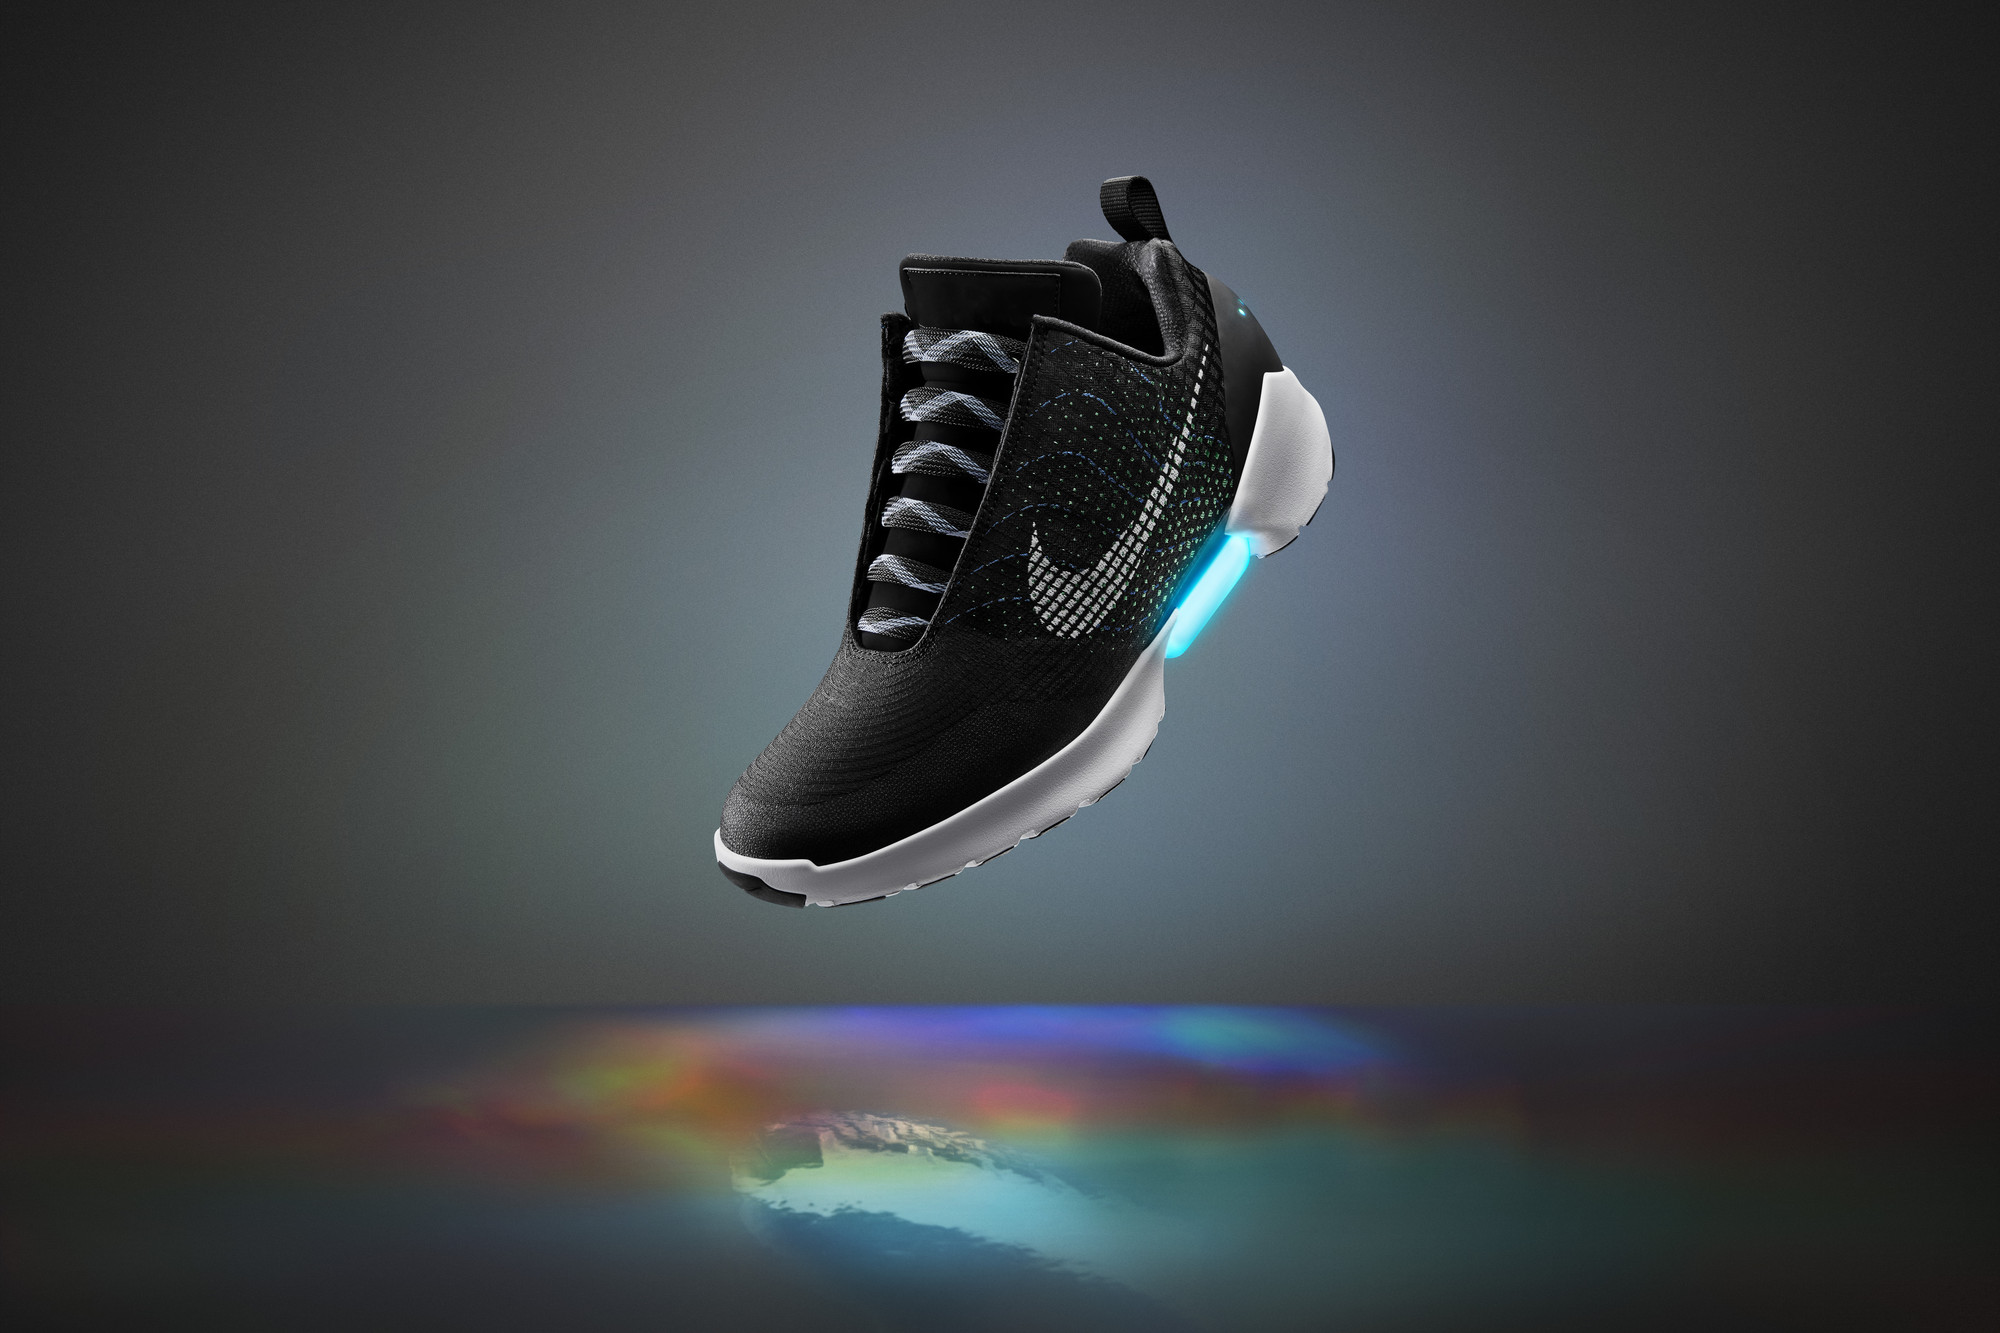 Soviético jugo espalda  Nike 'Back to the Future' Sneakers On Sale Now | Fortune